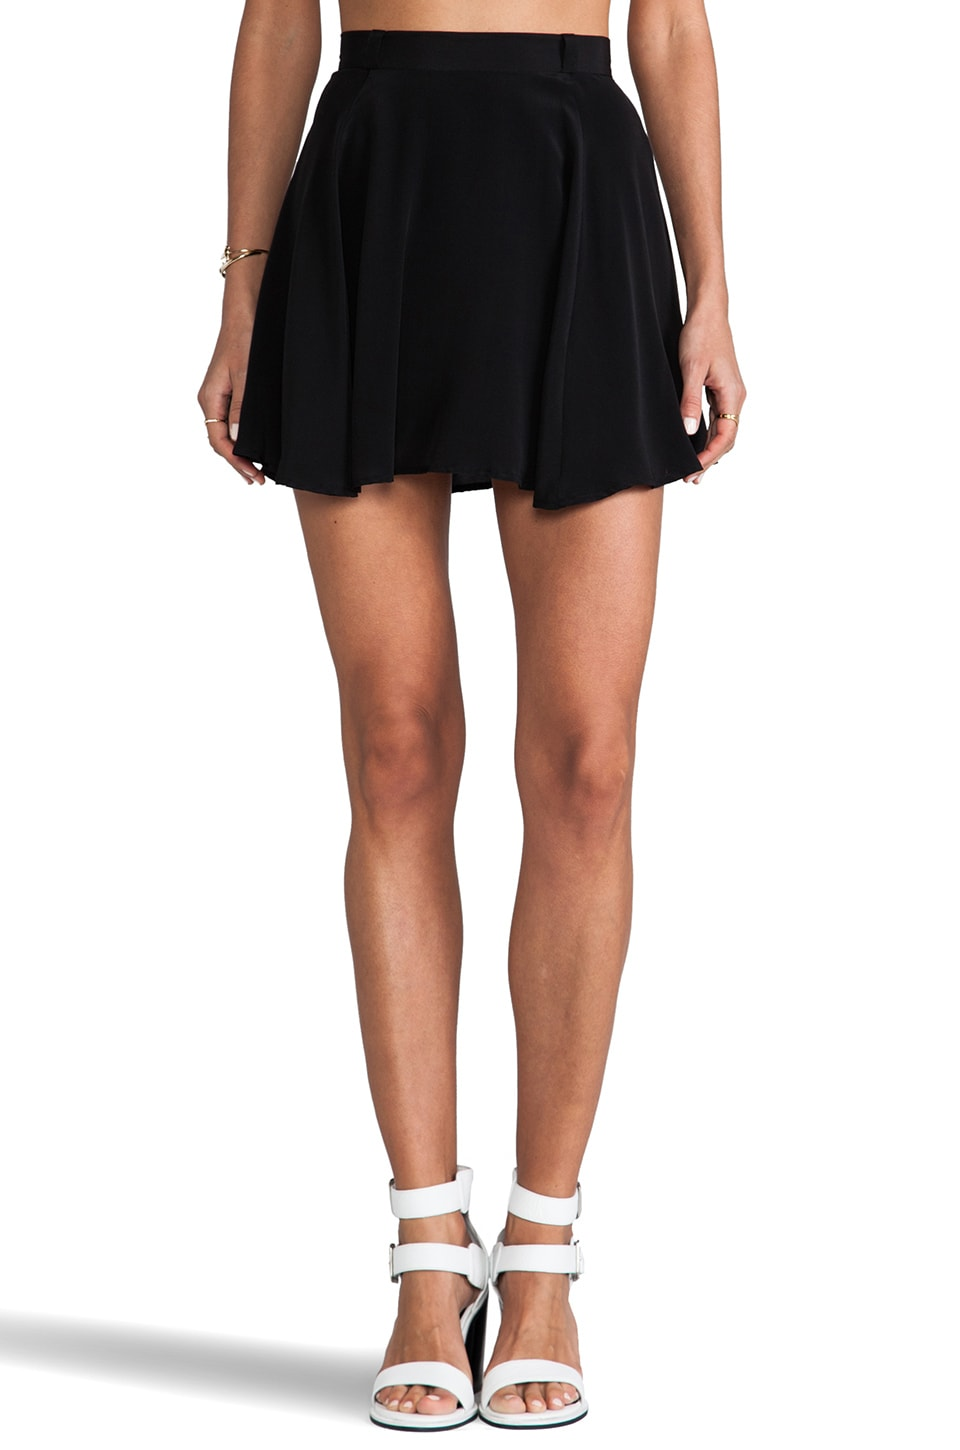 Yumi Kim Cara Skirt in Black